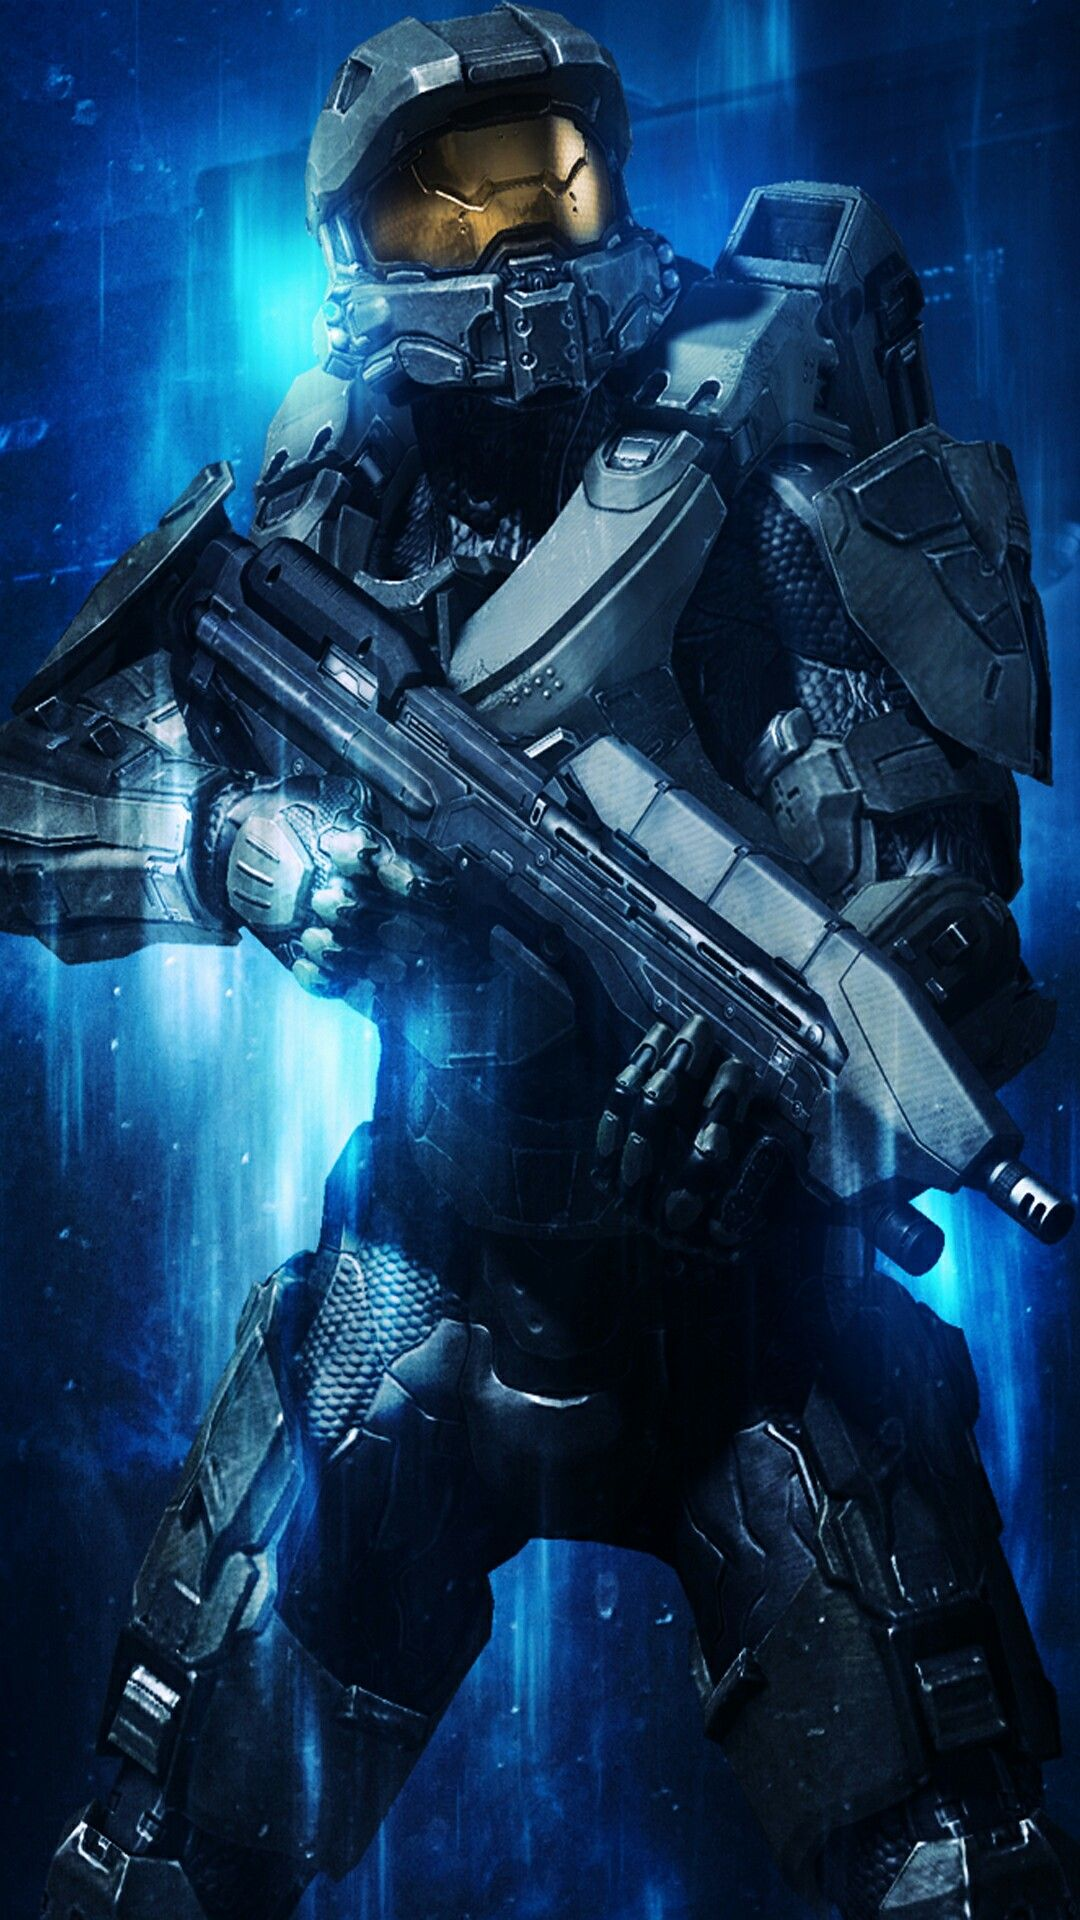 Pin by allie on gaming Iphone 6 plus wallpaper, Halo